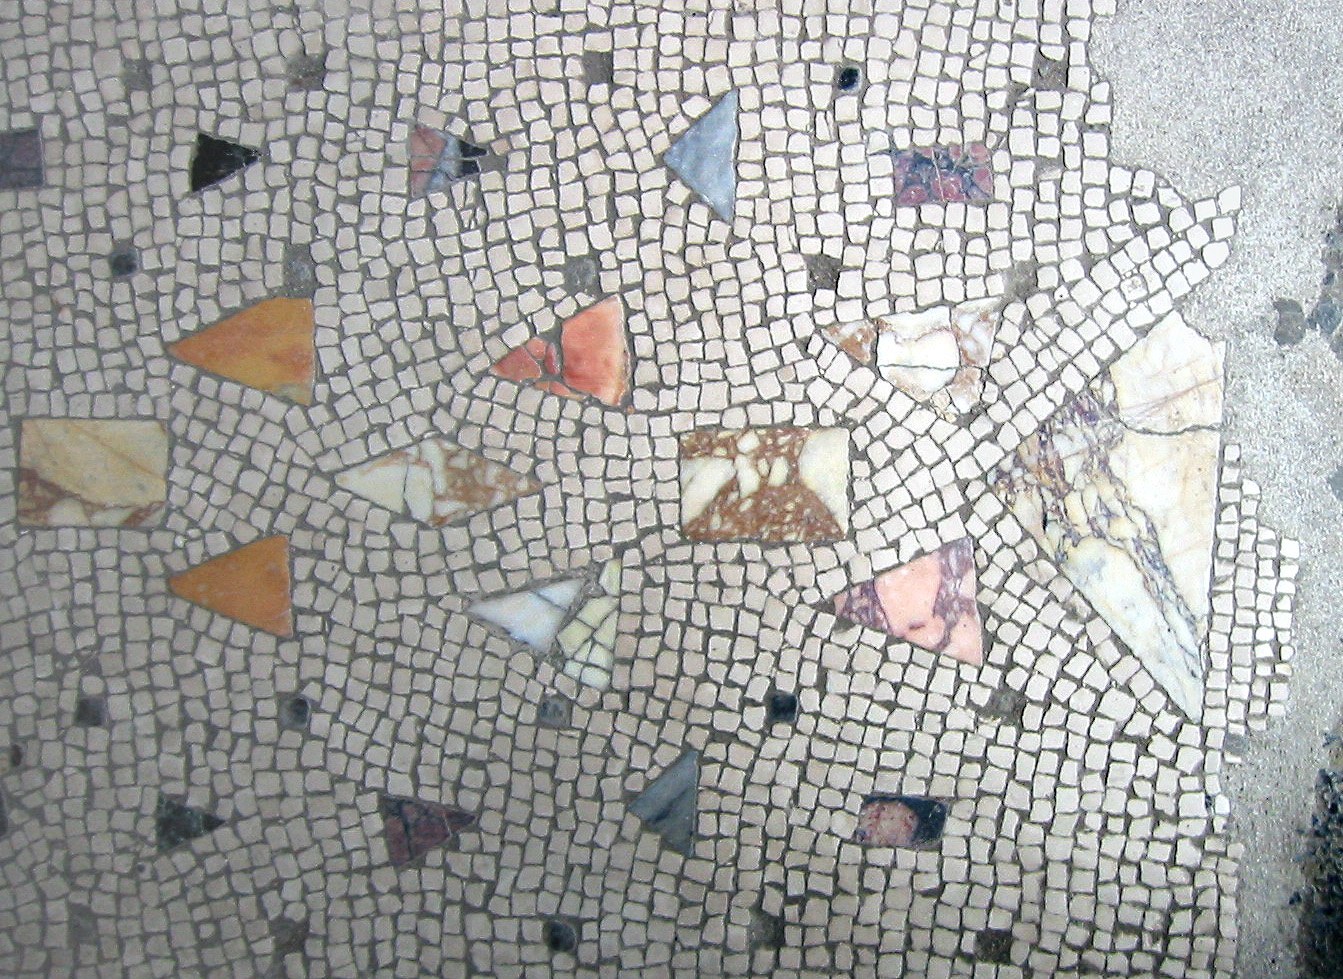 File:Herculaneum Mosaic Floor with Marble Inlay.jpg ...